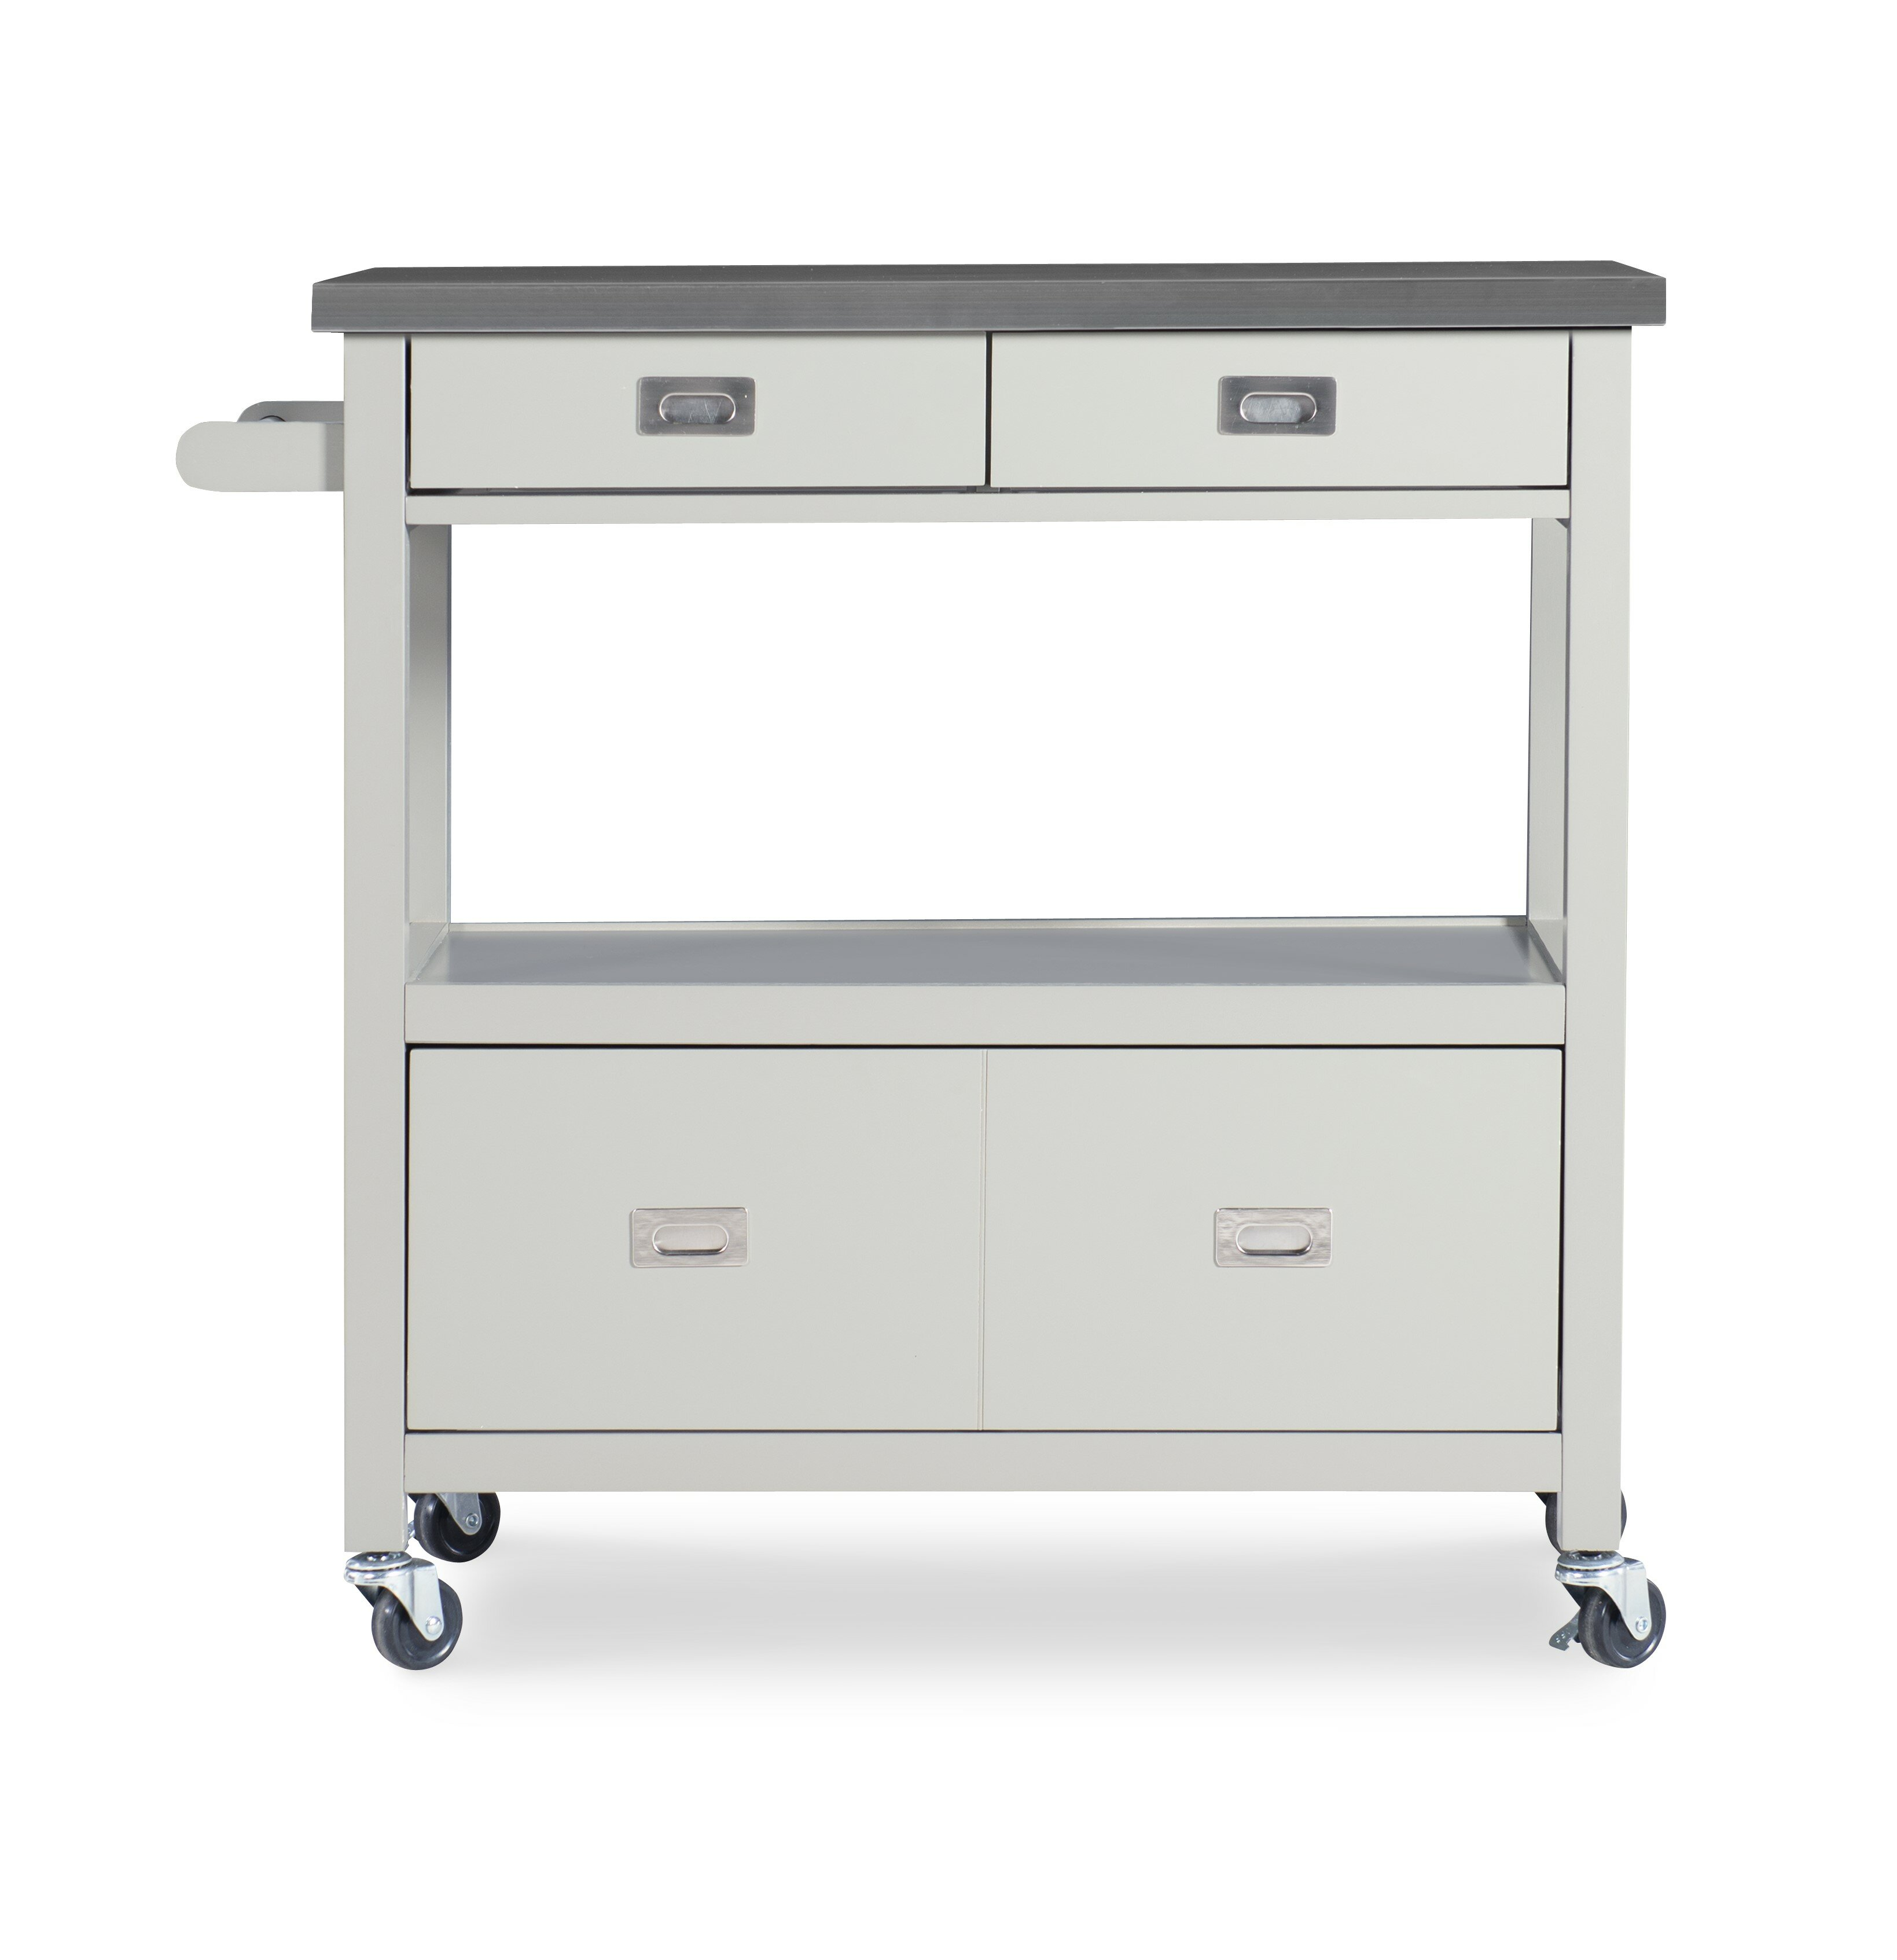 Willa Arlo Interiors Eira Kitchen Island with Stainless Steel Top